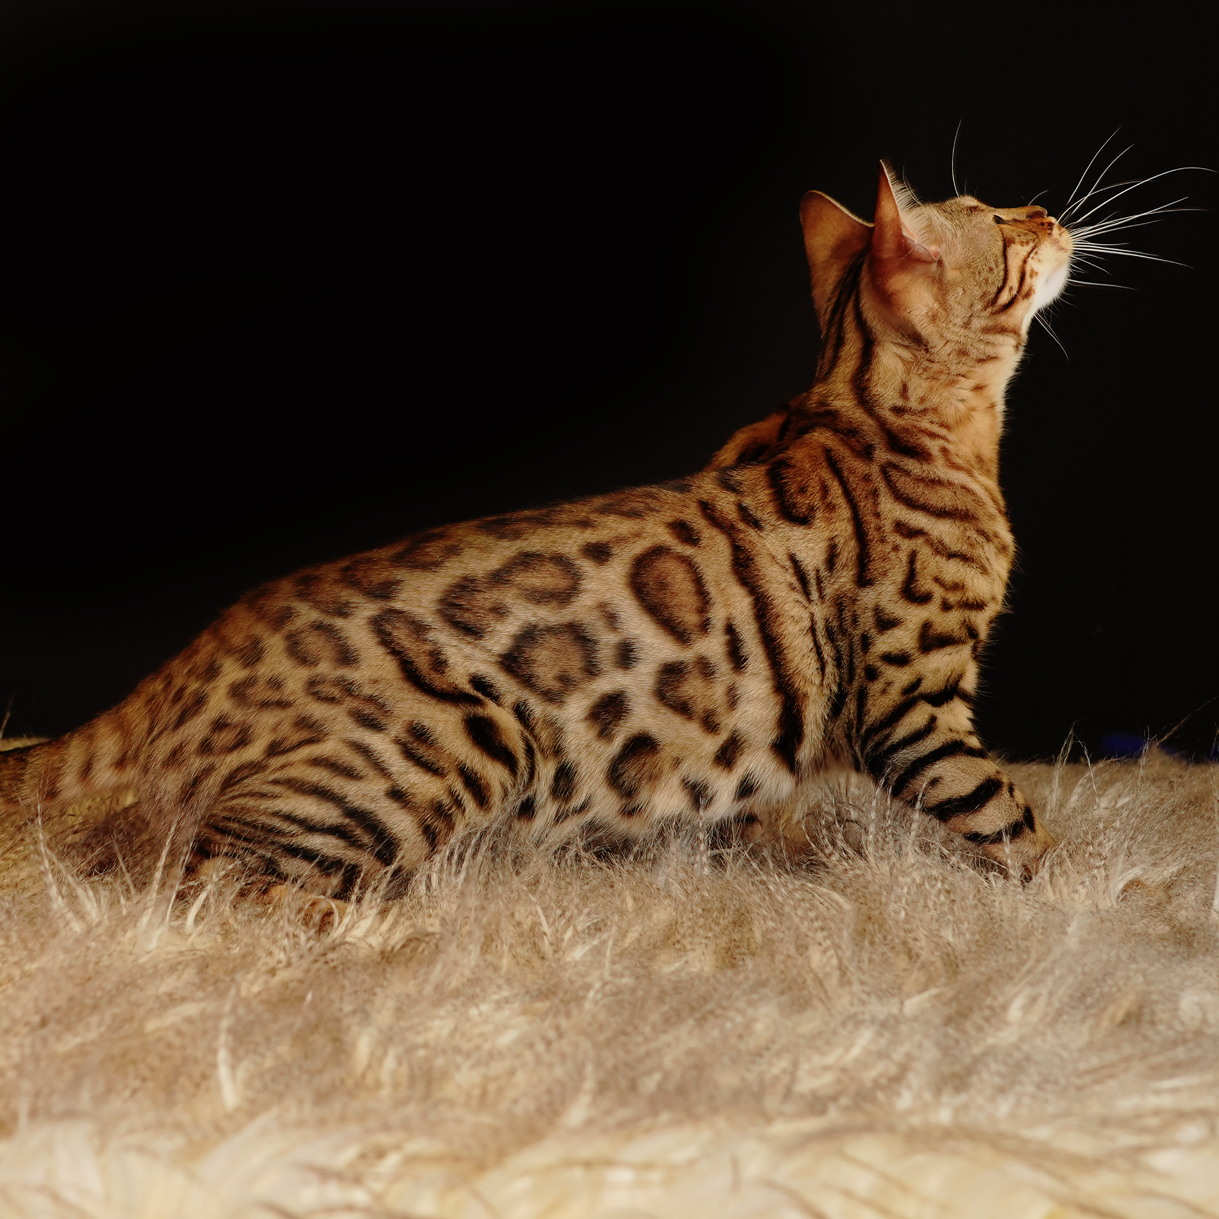 Bengal cat with pattern coat